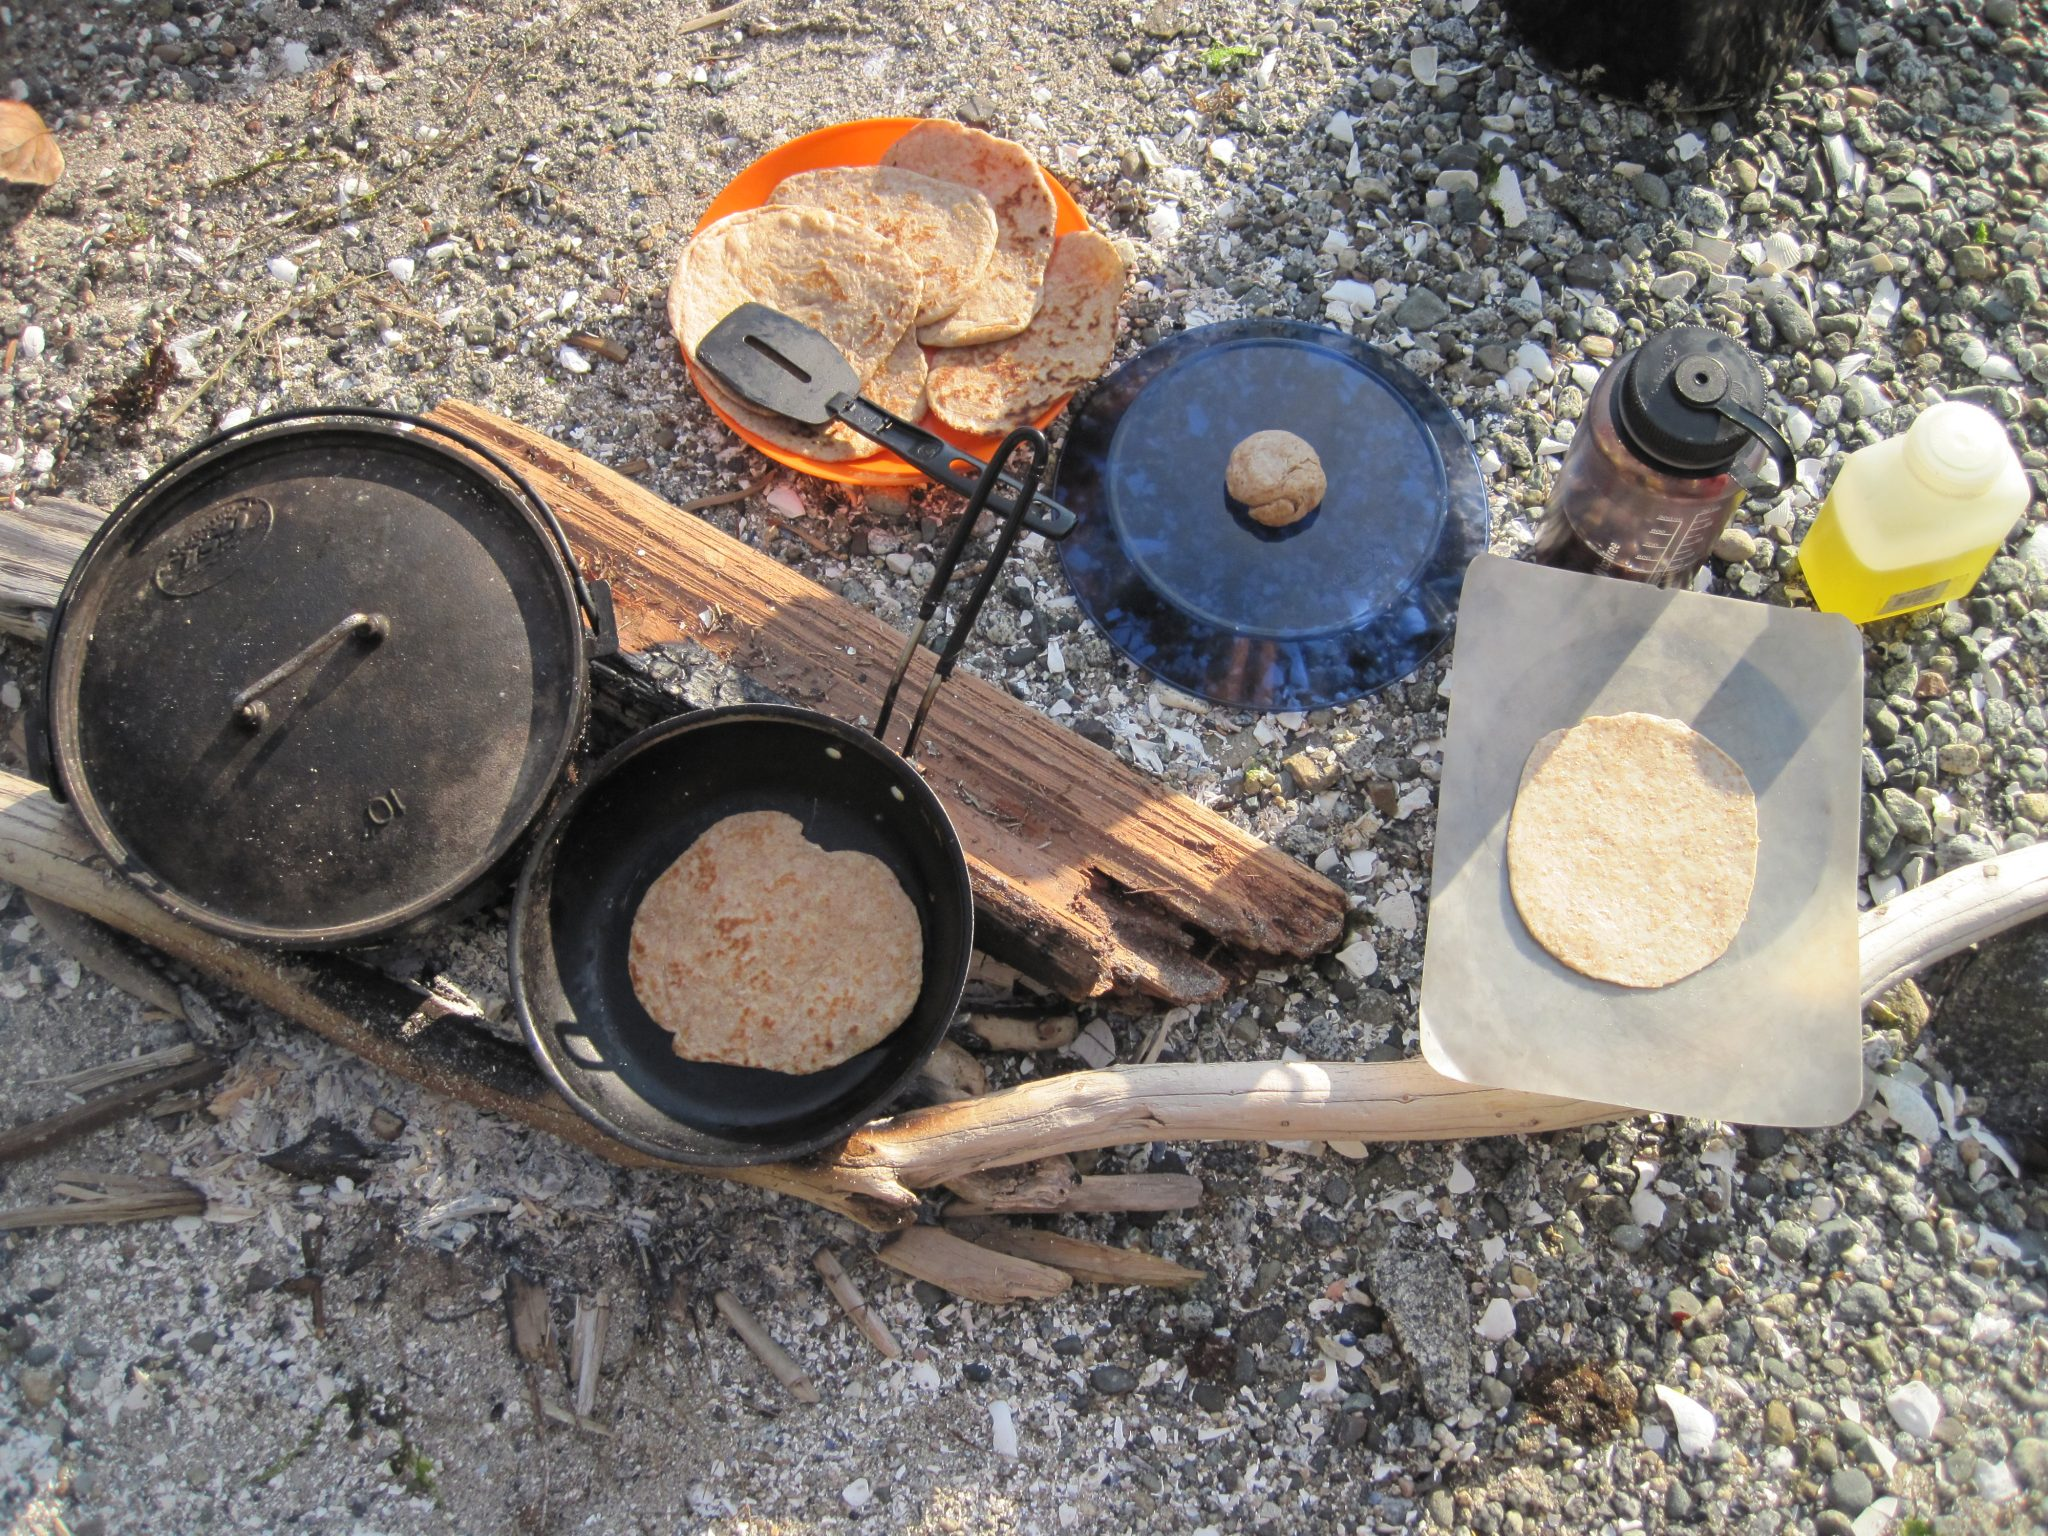 Sea Kayaking & Making Tortillas: The Simple Act of Living